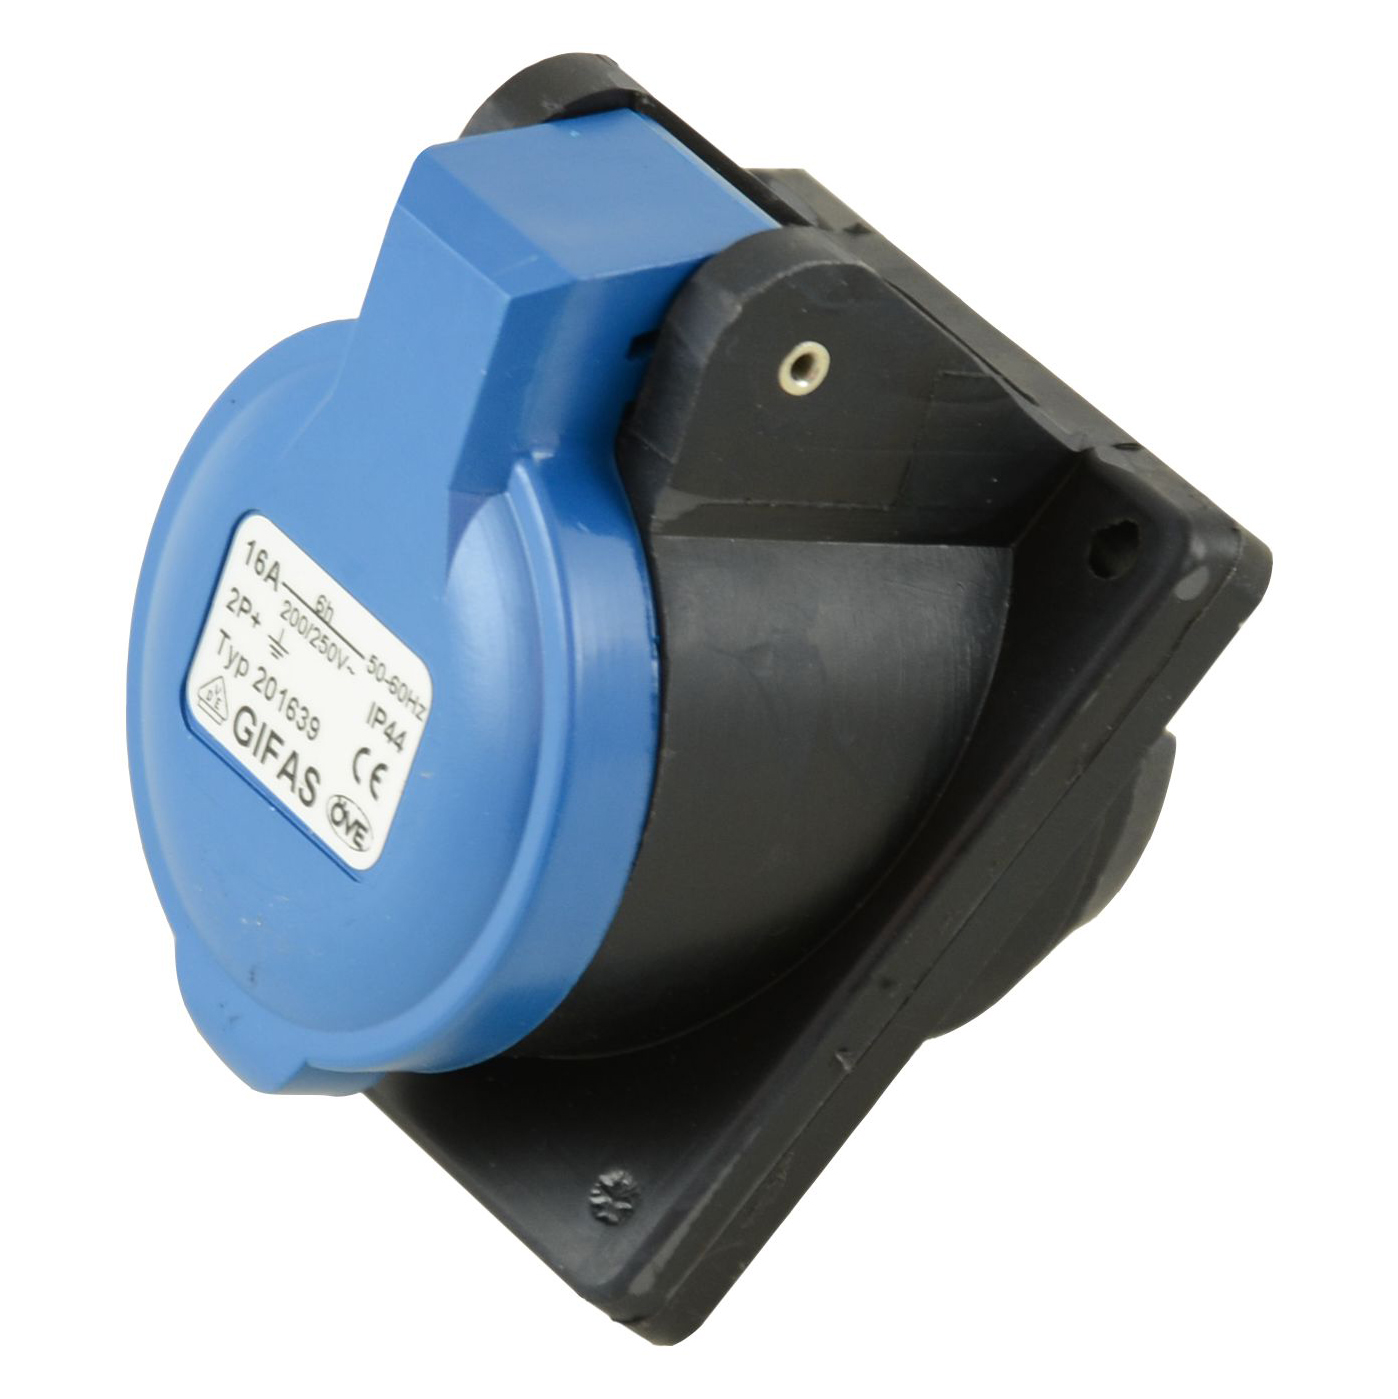 GIFAS Solid Rubber CEE Built-in Socket 16A/230V 3-pole (101401)